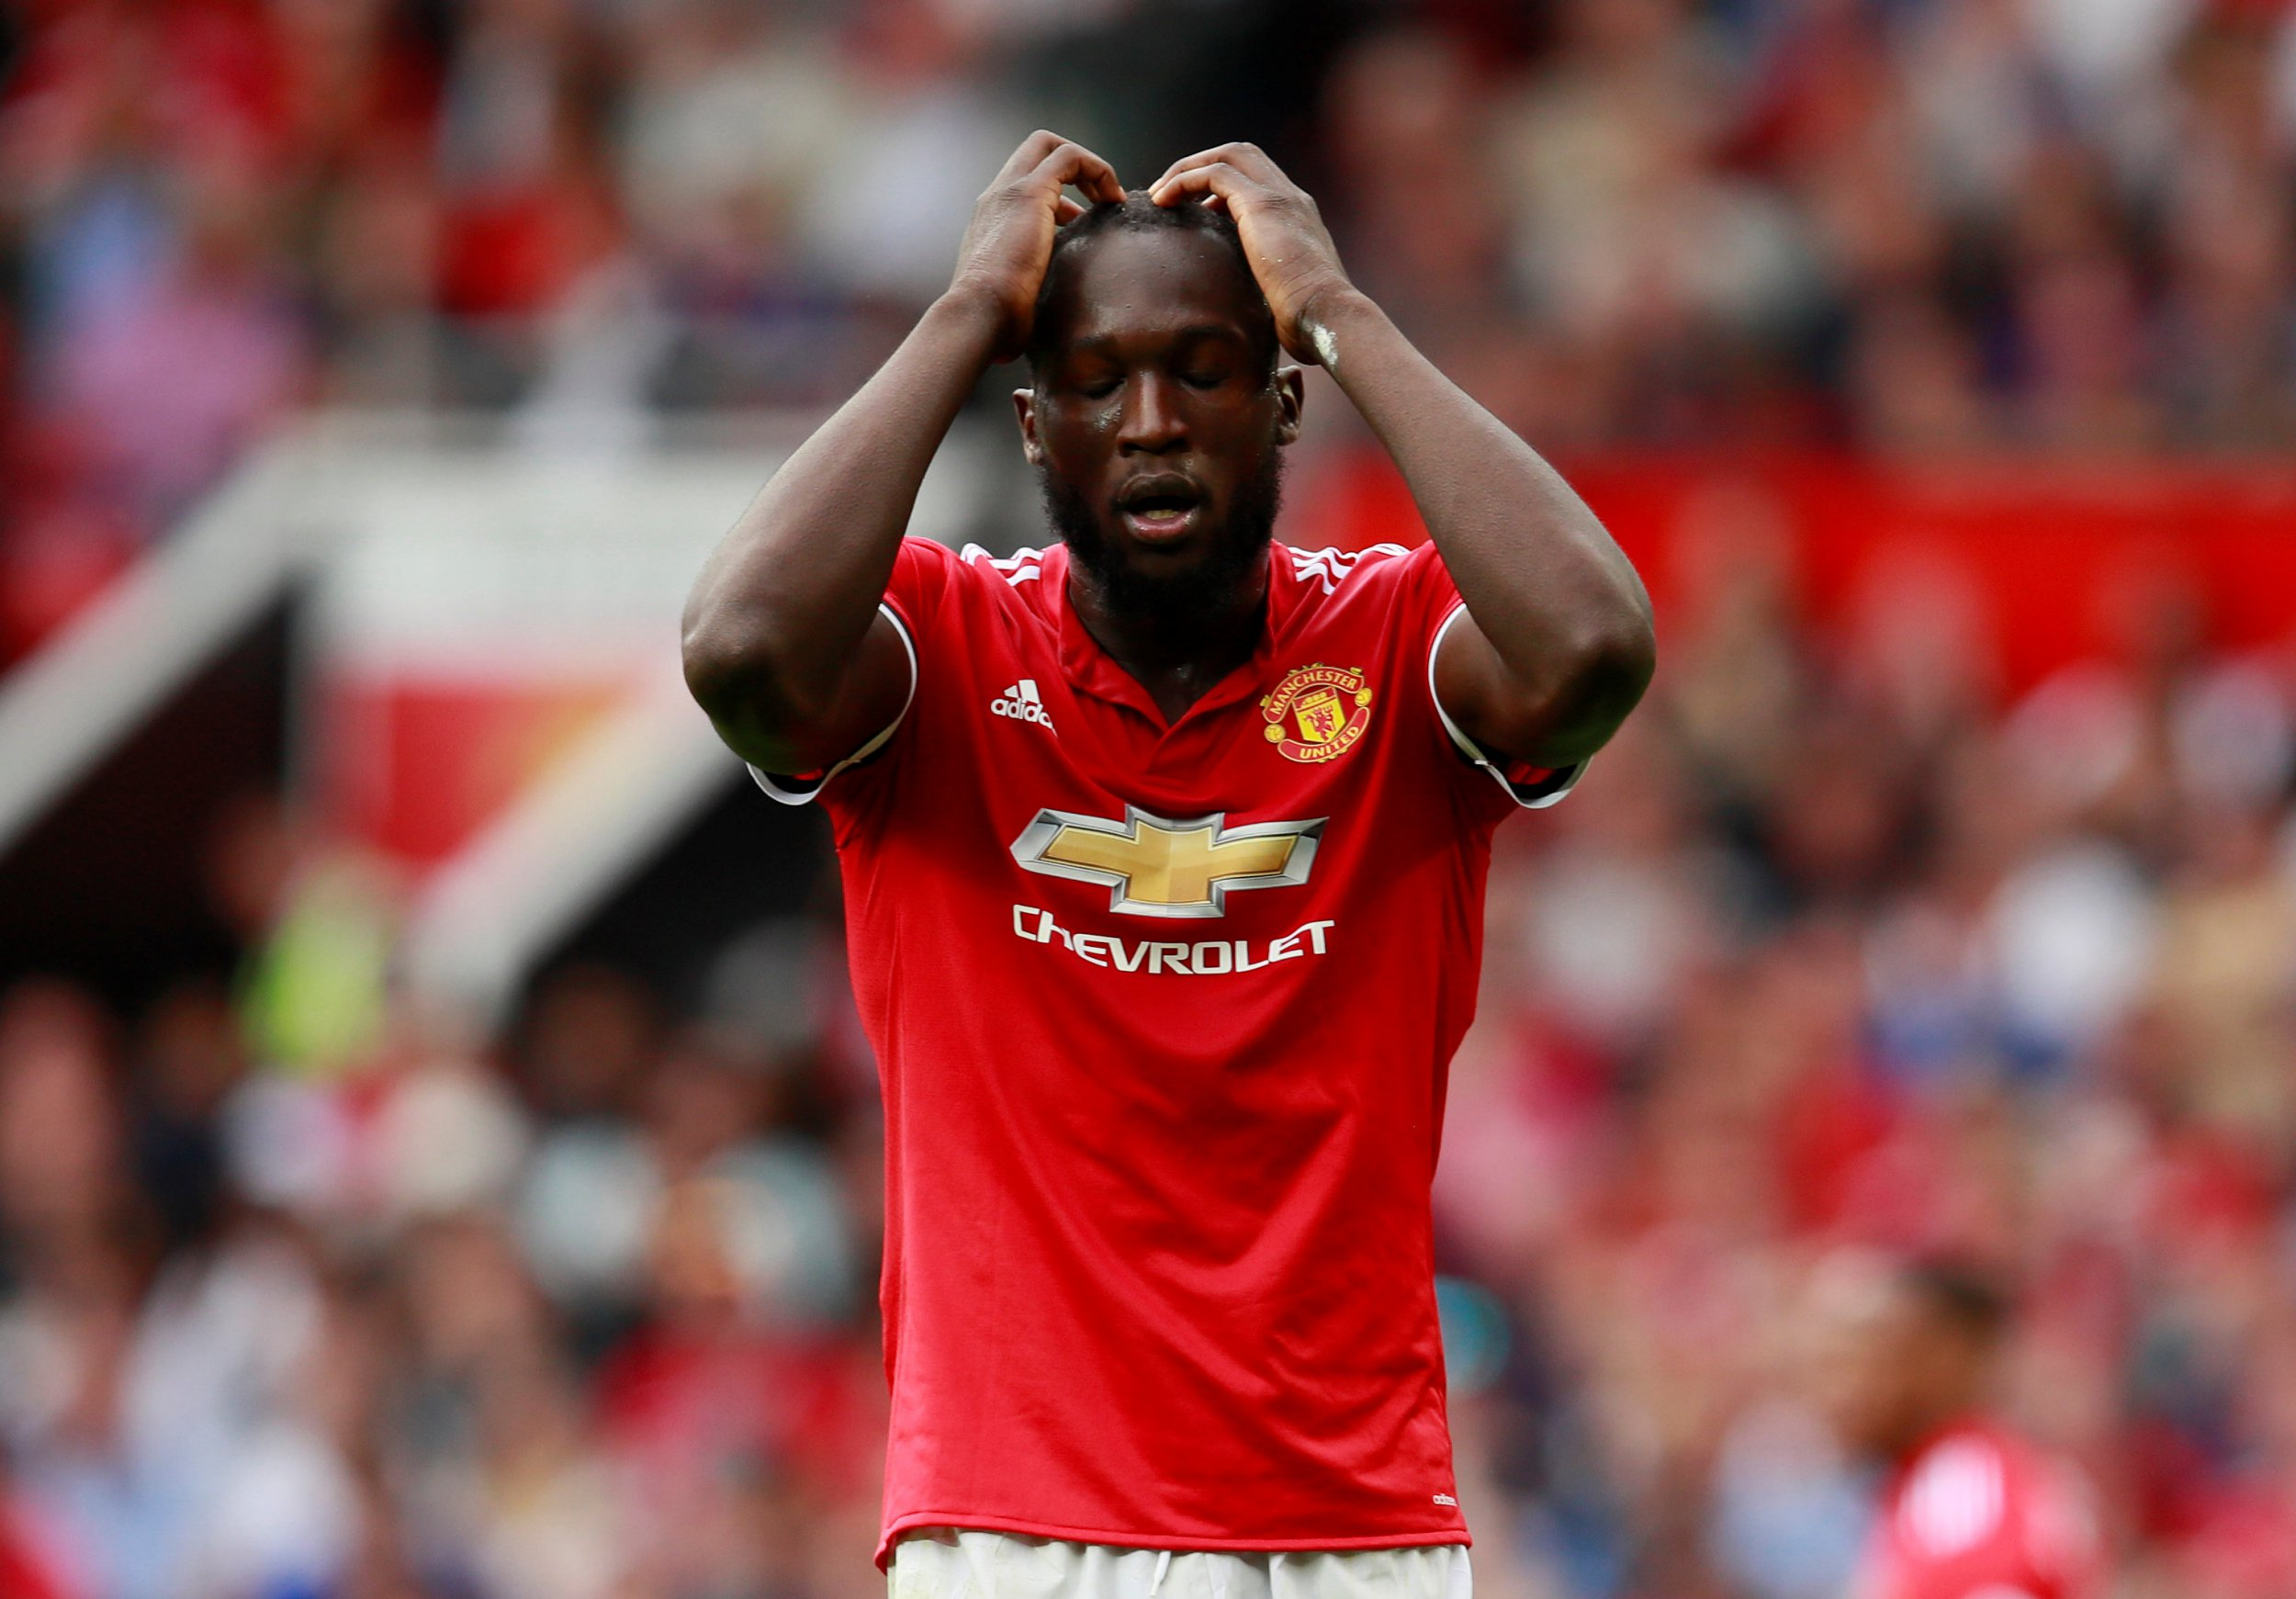 Thierry Henry finds much to fault about Romelu Lukaku's Premier League debut for Manchester United